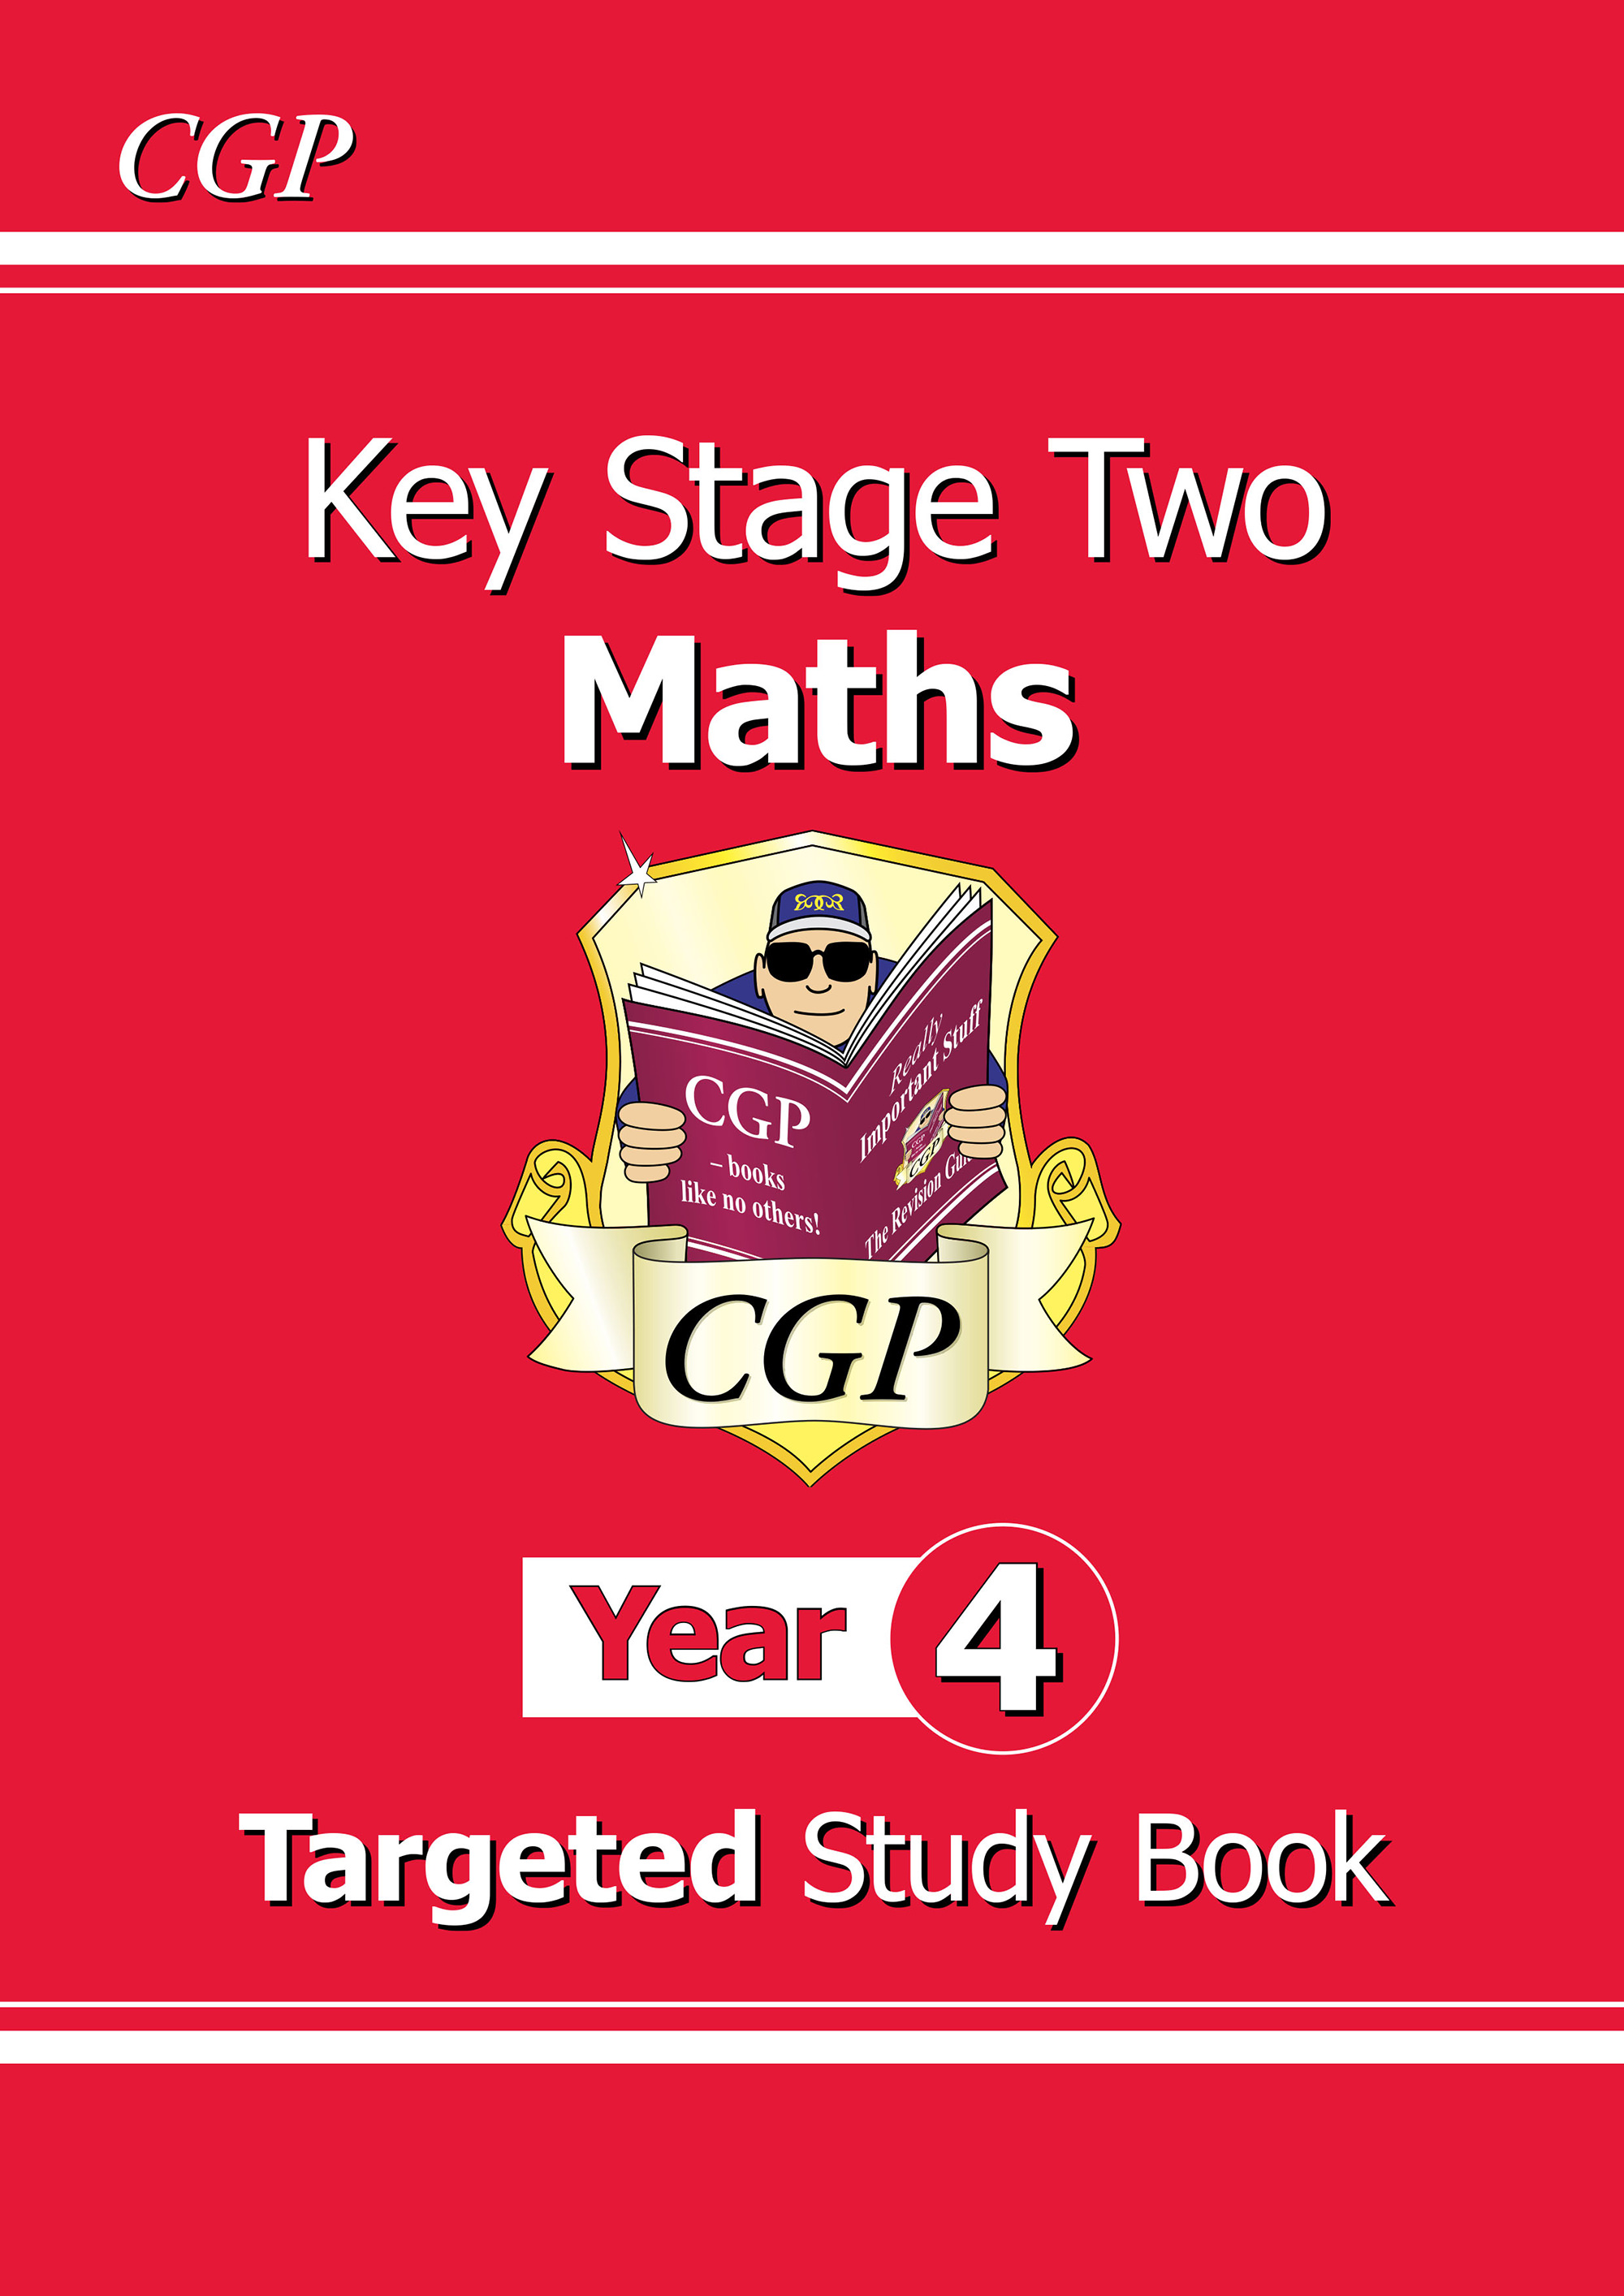 M4R23DK - KS2 Maths Targeted Study Book - Year 4